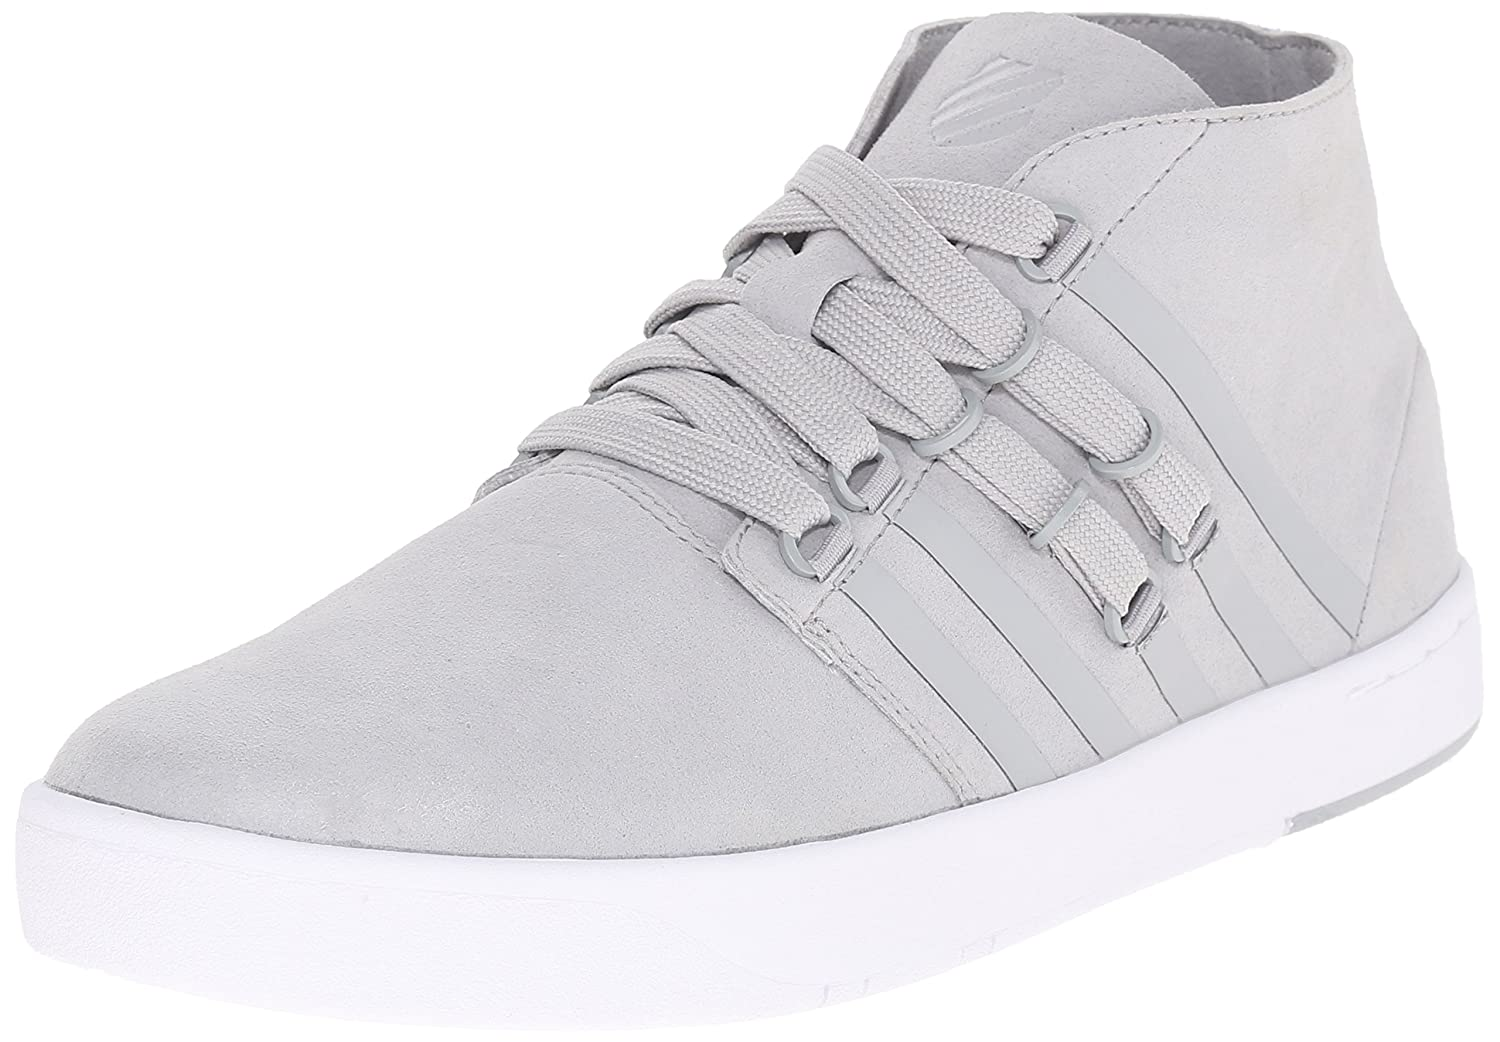 Gentlemen/Ladies K-Swiss D D D R Cinch Chukka, Men's Fashion Sneaker main category Carefully selected materials Exquisite processing WH10808 6ca84f